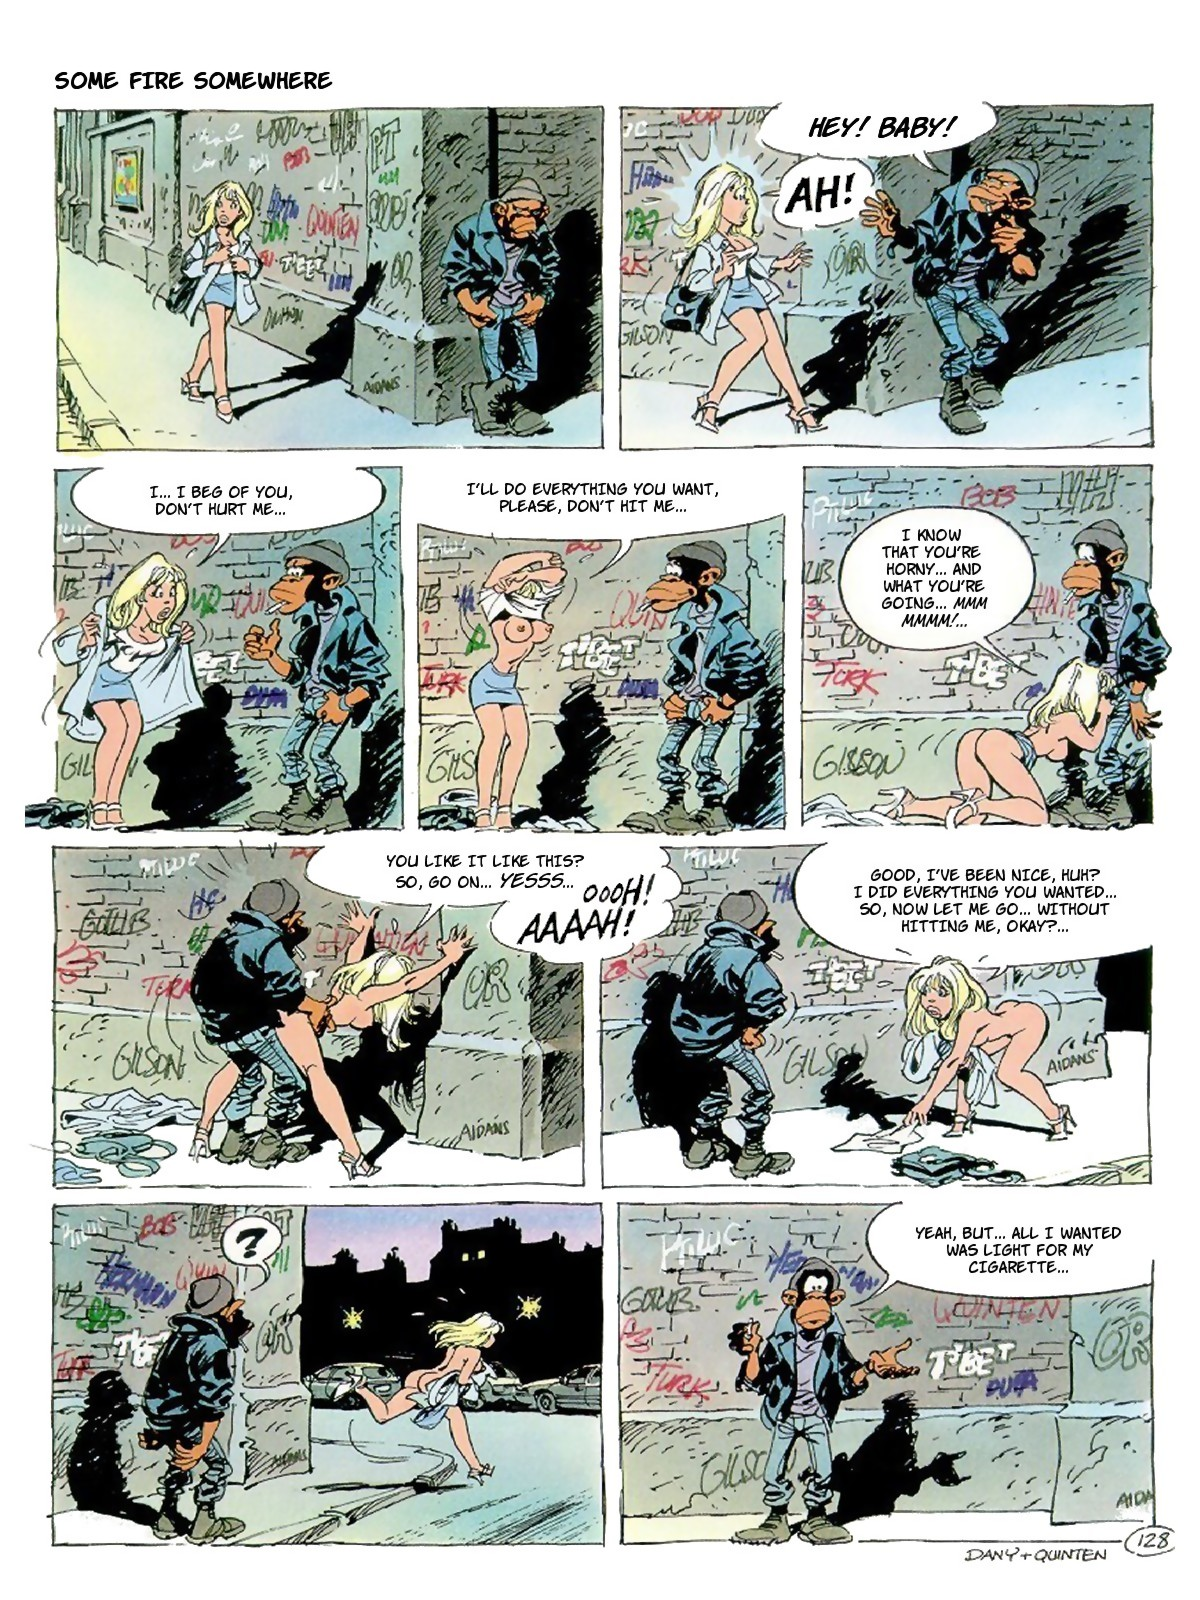 02b The poor blonde doll from this adult comix meets a street bandit in the ...